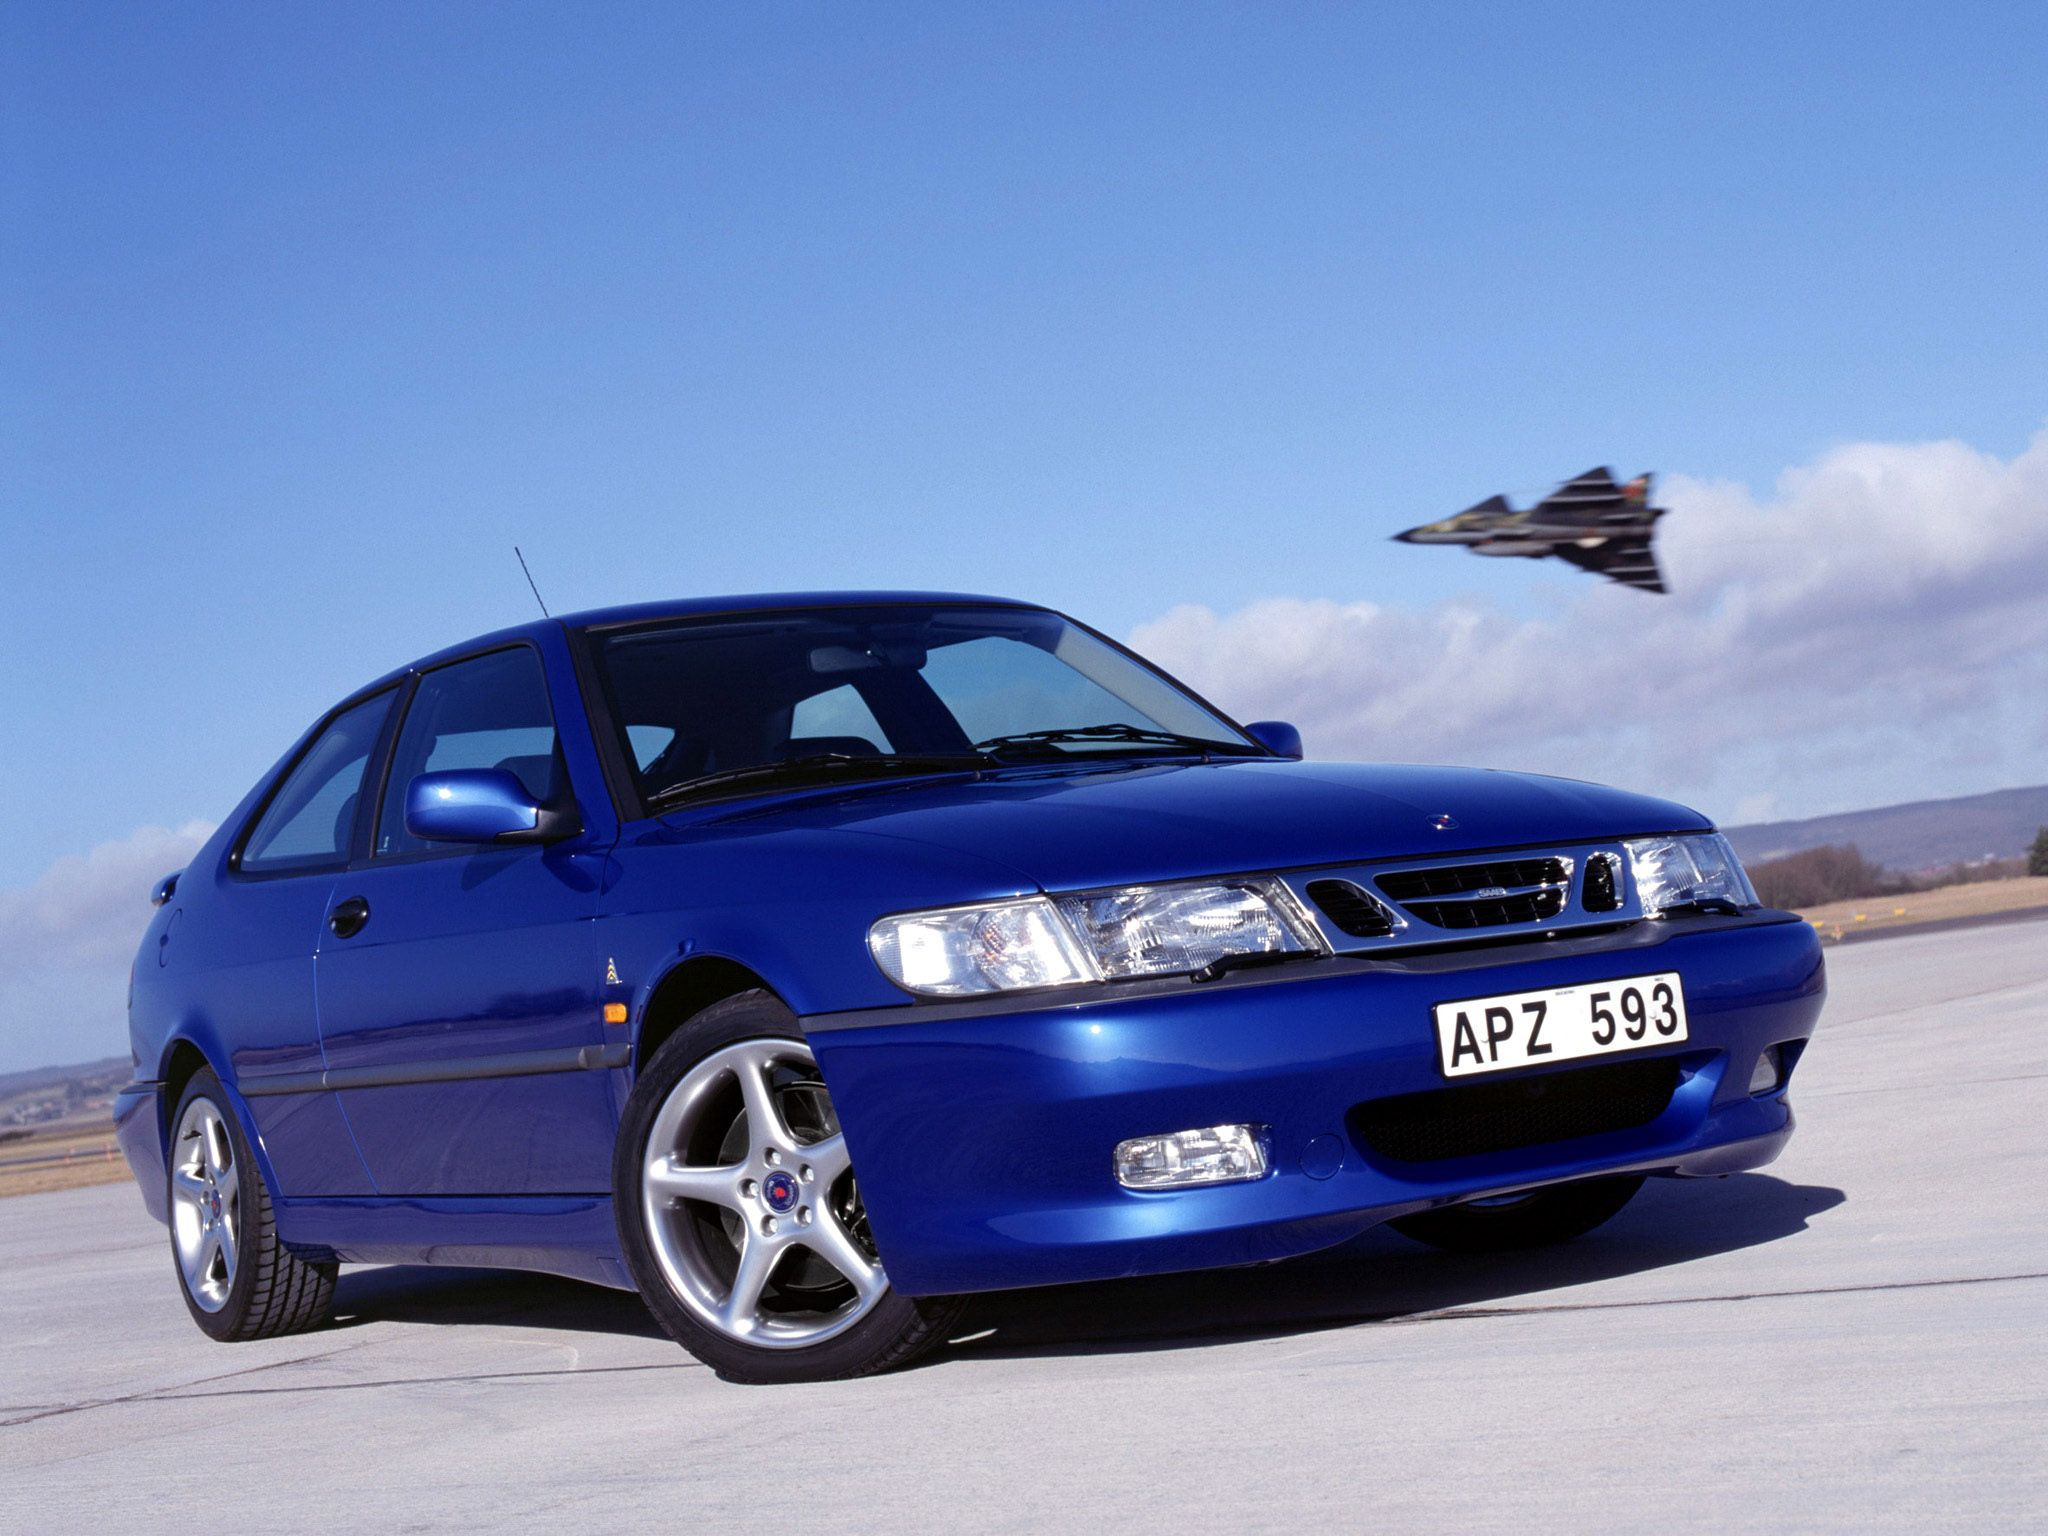 Why The Saab Viggen And Volvo V70r Are The Next Great Future Classics Saab 9 3 Viggen Saab 9 3 Used Luxury Cars